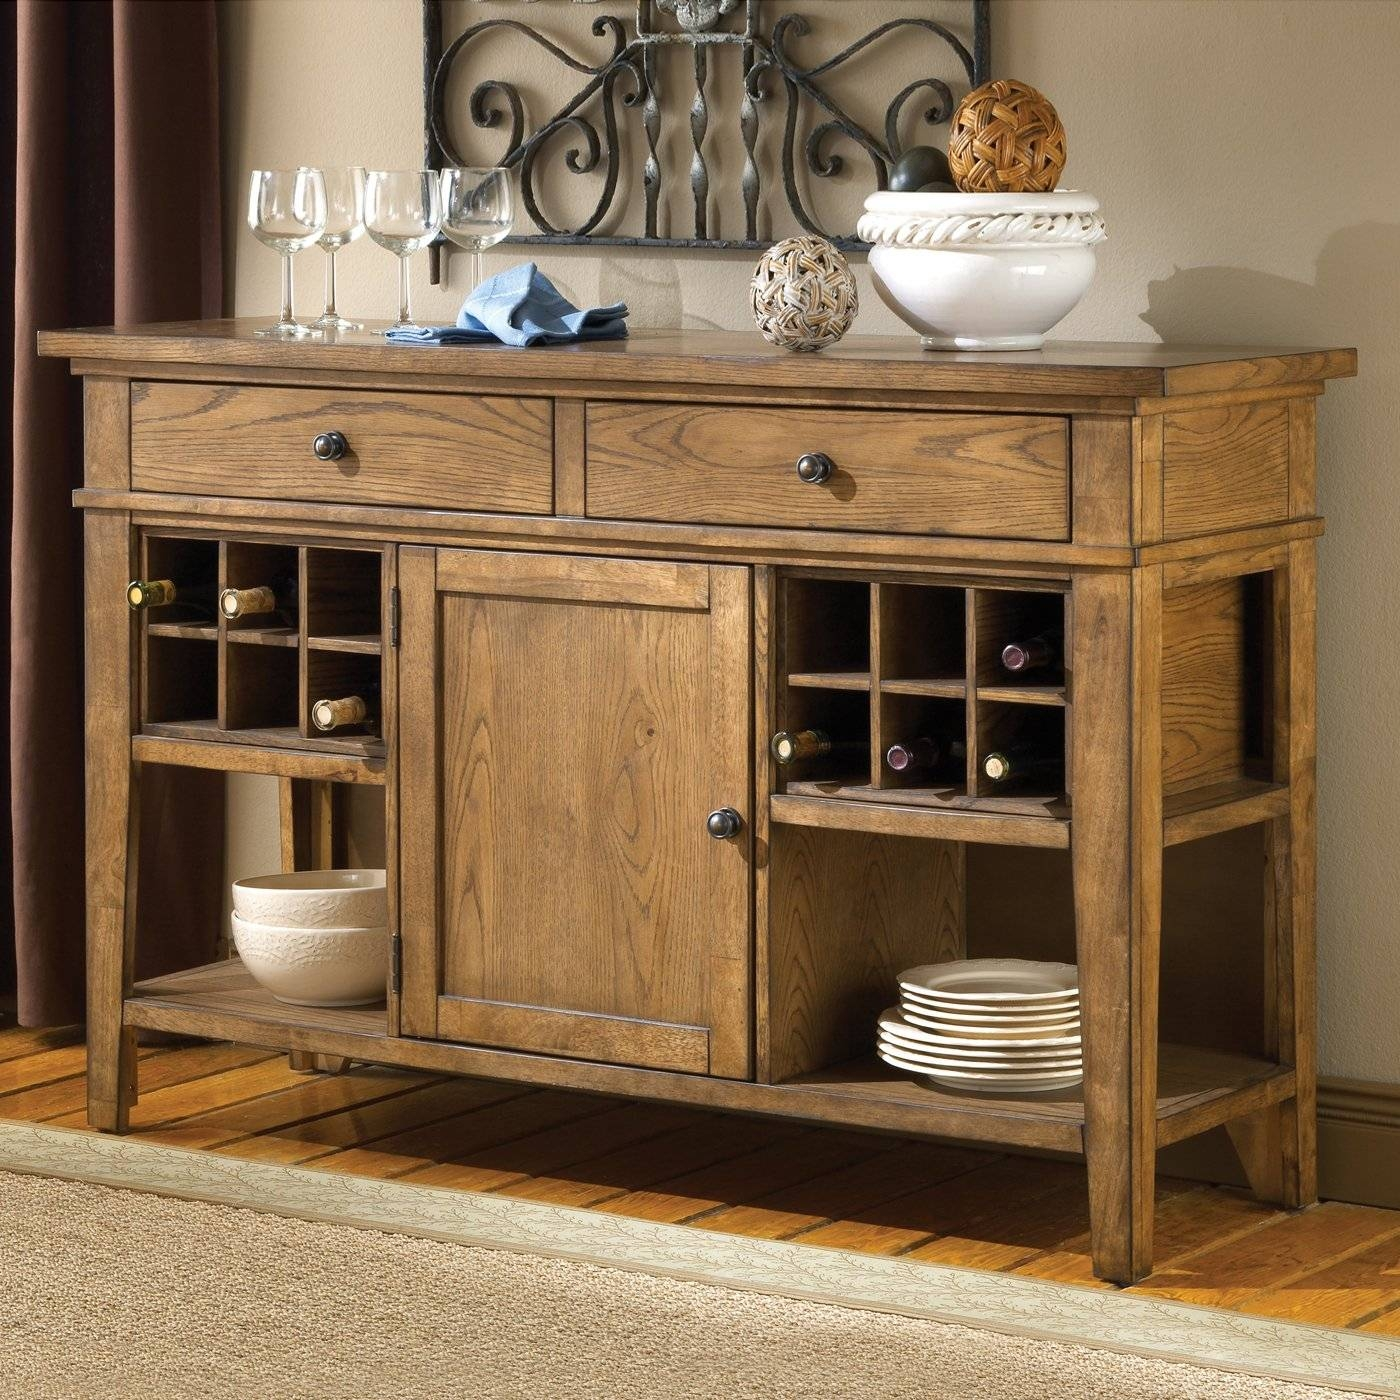 Traditional Dining Room Sideboards And Buffets : Rustic Dining Intended For Most Current Rustic Sideboards And Buffets (View 4 of 15)